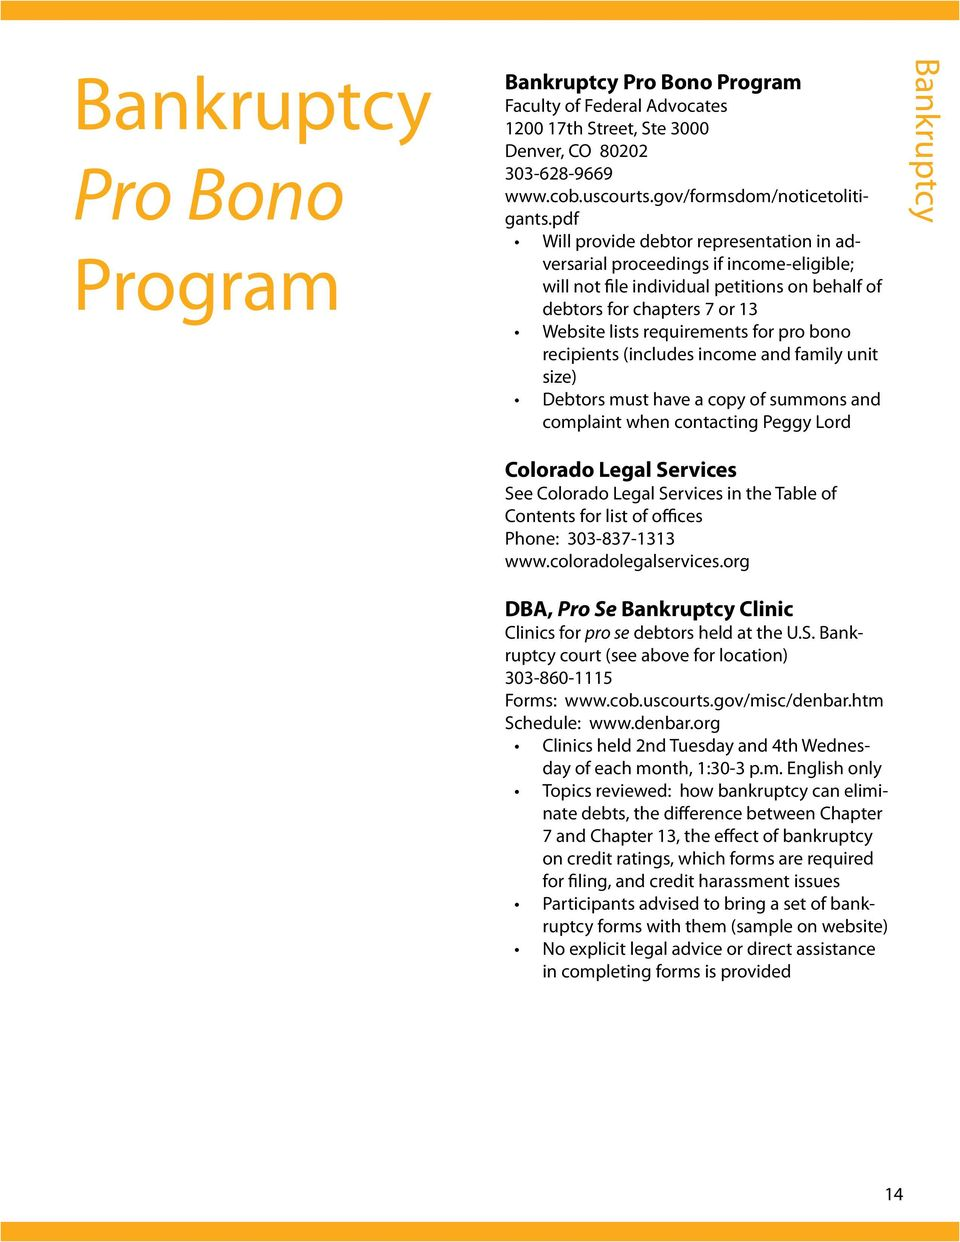 bono recipients (includes income and family unit size) Debtors must have a copy of summons and complaint when contacting Peggy Lord Colorado Legal Services See Colorado Legal Services in the Table of